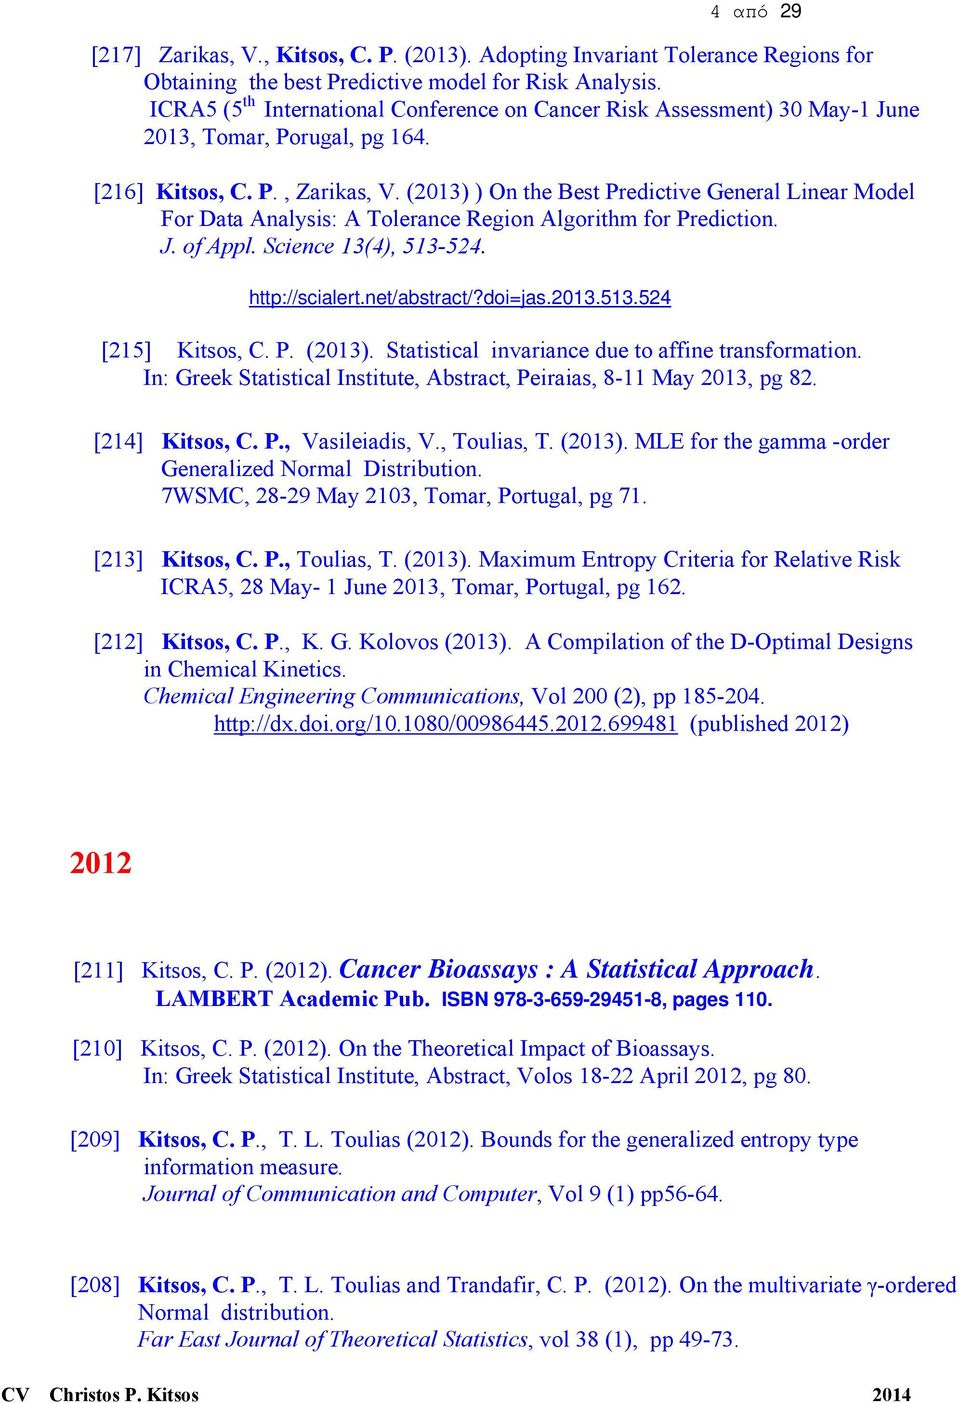 (2013) ) On the Best Predictive General Linear Model For Data Analysis: A Tolerance Region Algorithm for Prediction. J. of Appl. Science 13(4), 513-524. http://scialert.net/abstract/?doi=jas.2013.513.524 [215] Kitsos, C.